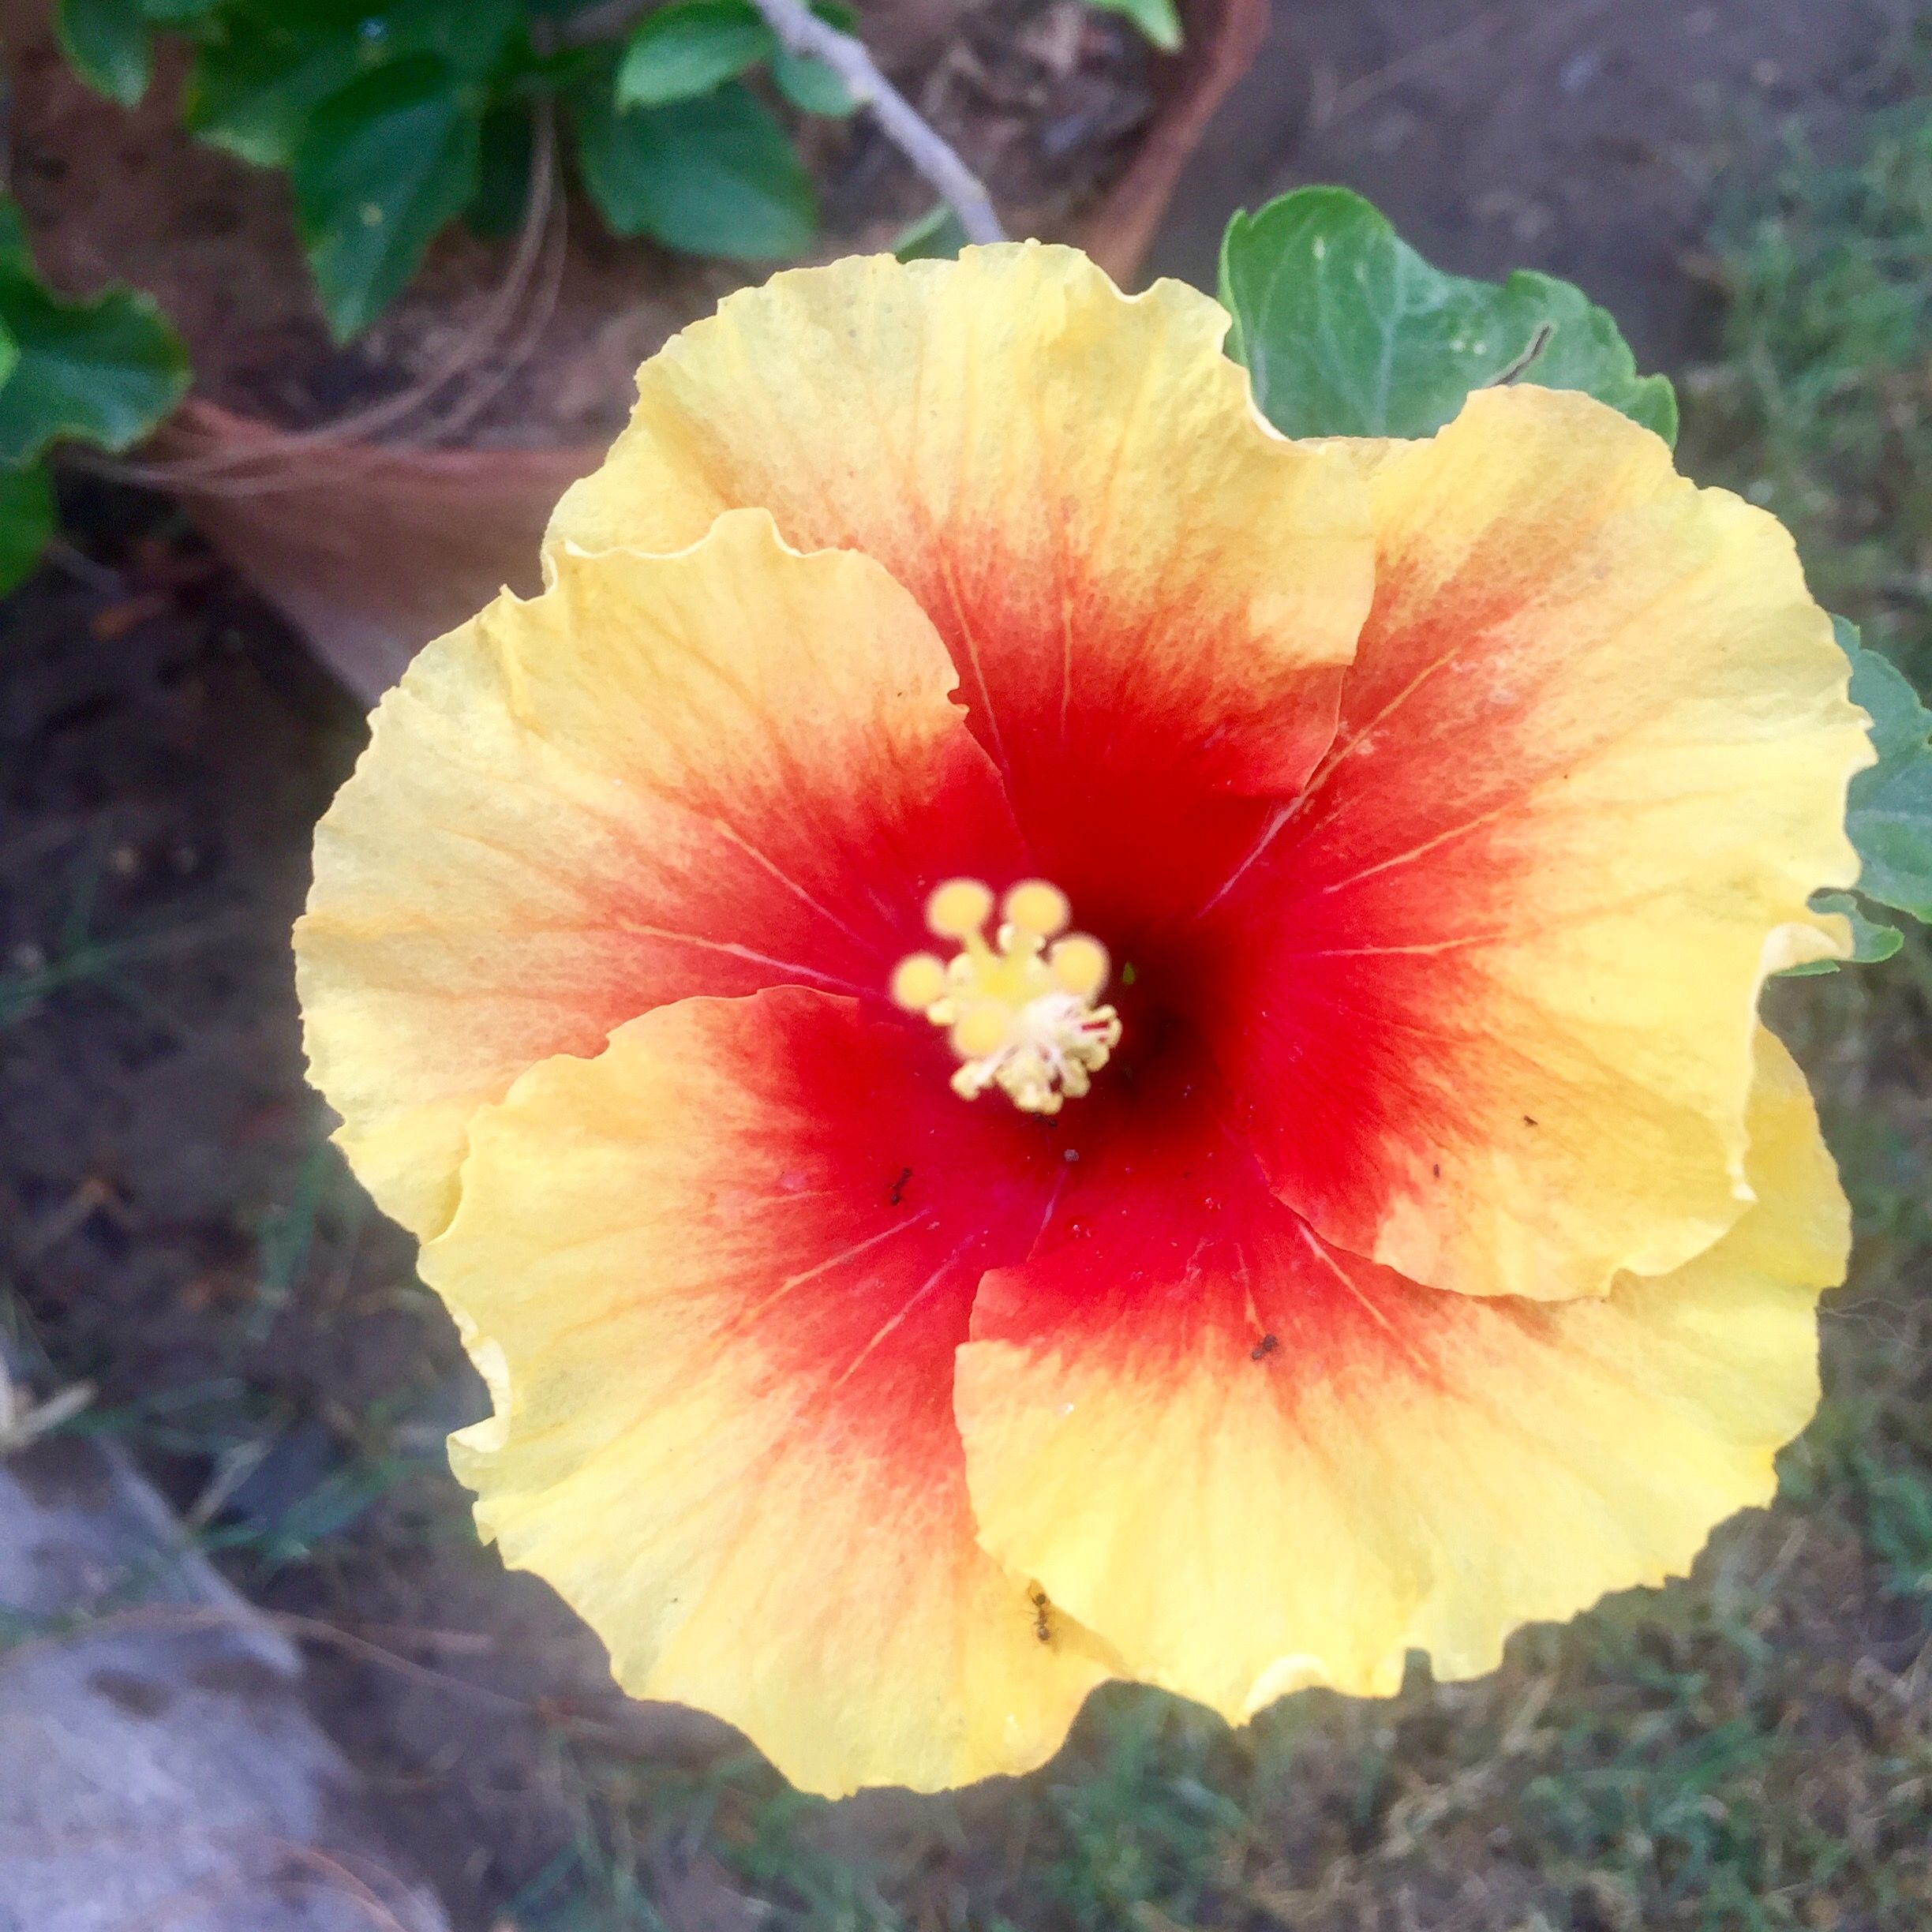 Some trivia you can live without knowing but here goes hibiscus some trivia you can live without knowing but here goes hibiscus is the izmirmasajfo